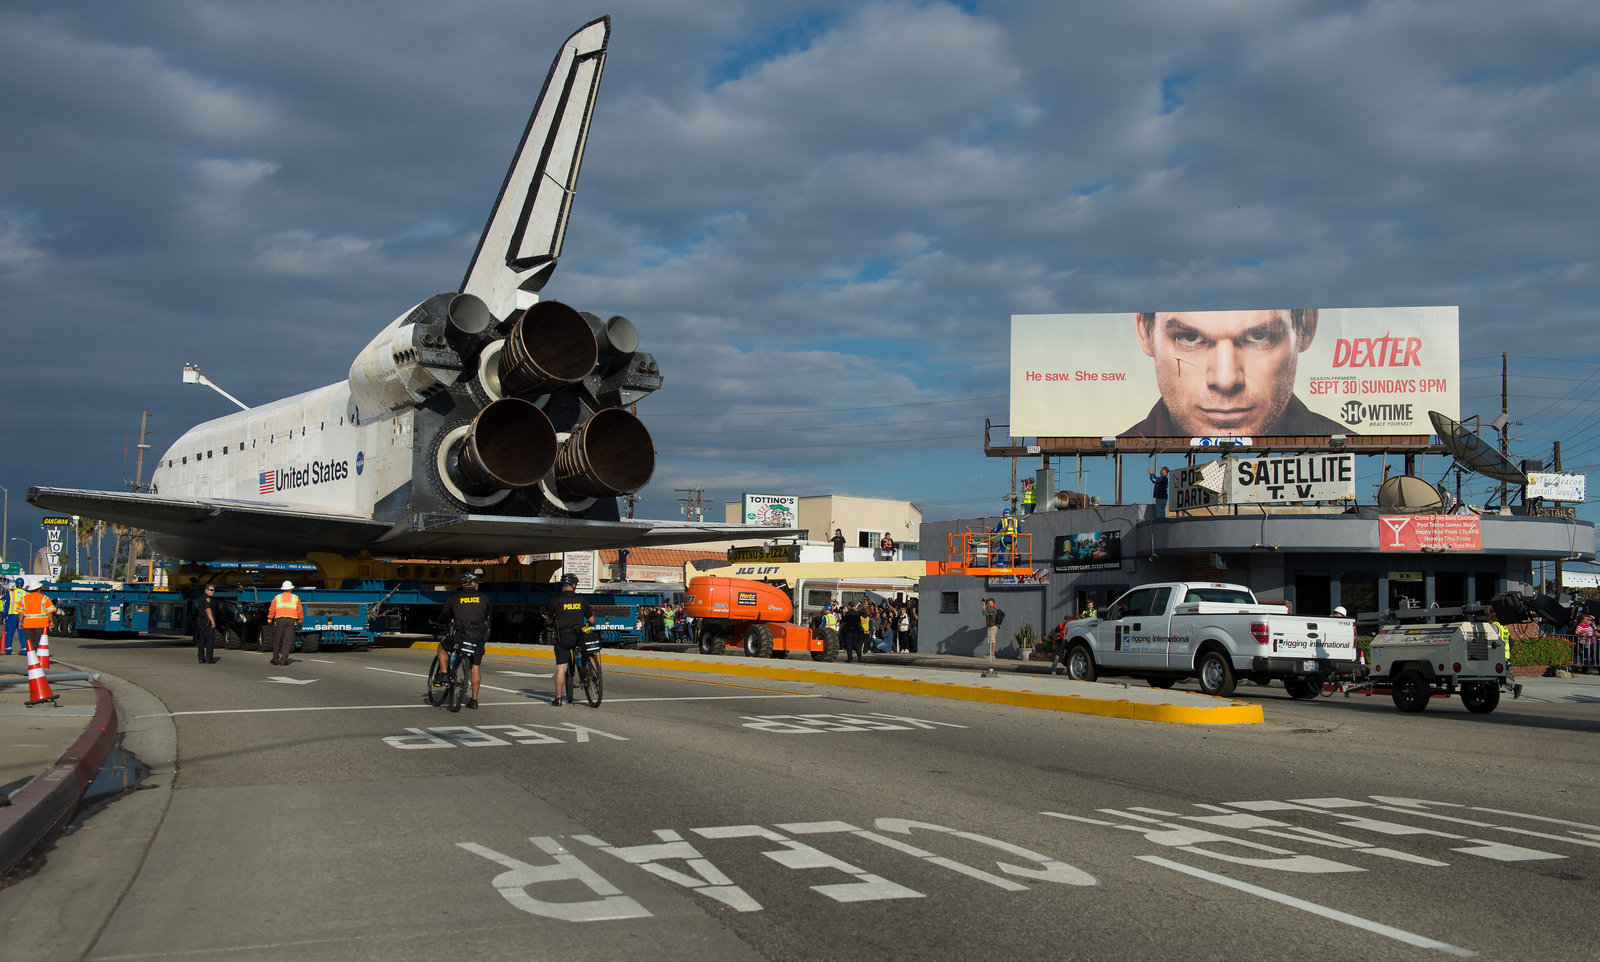 Shuttle Endeavour on L.A. Streets: Bilboards